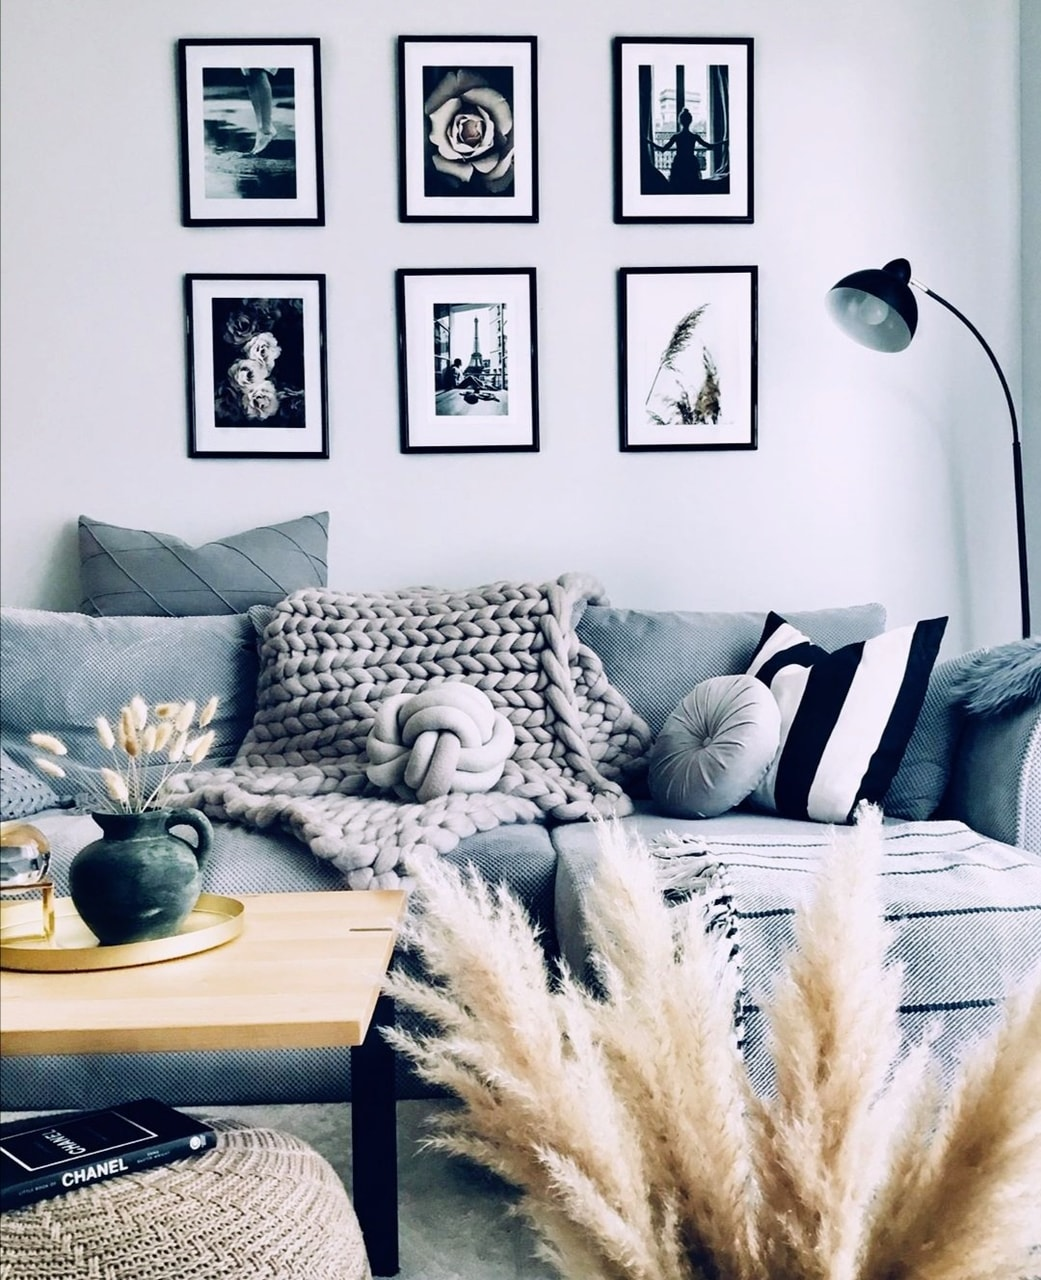 aesthetic, comfort, and cozy image